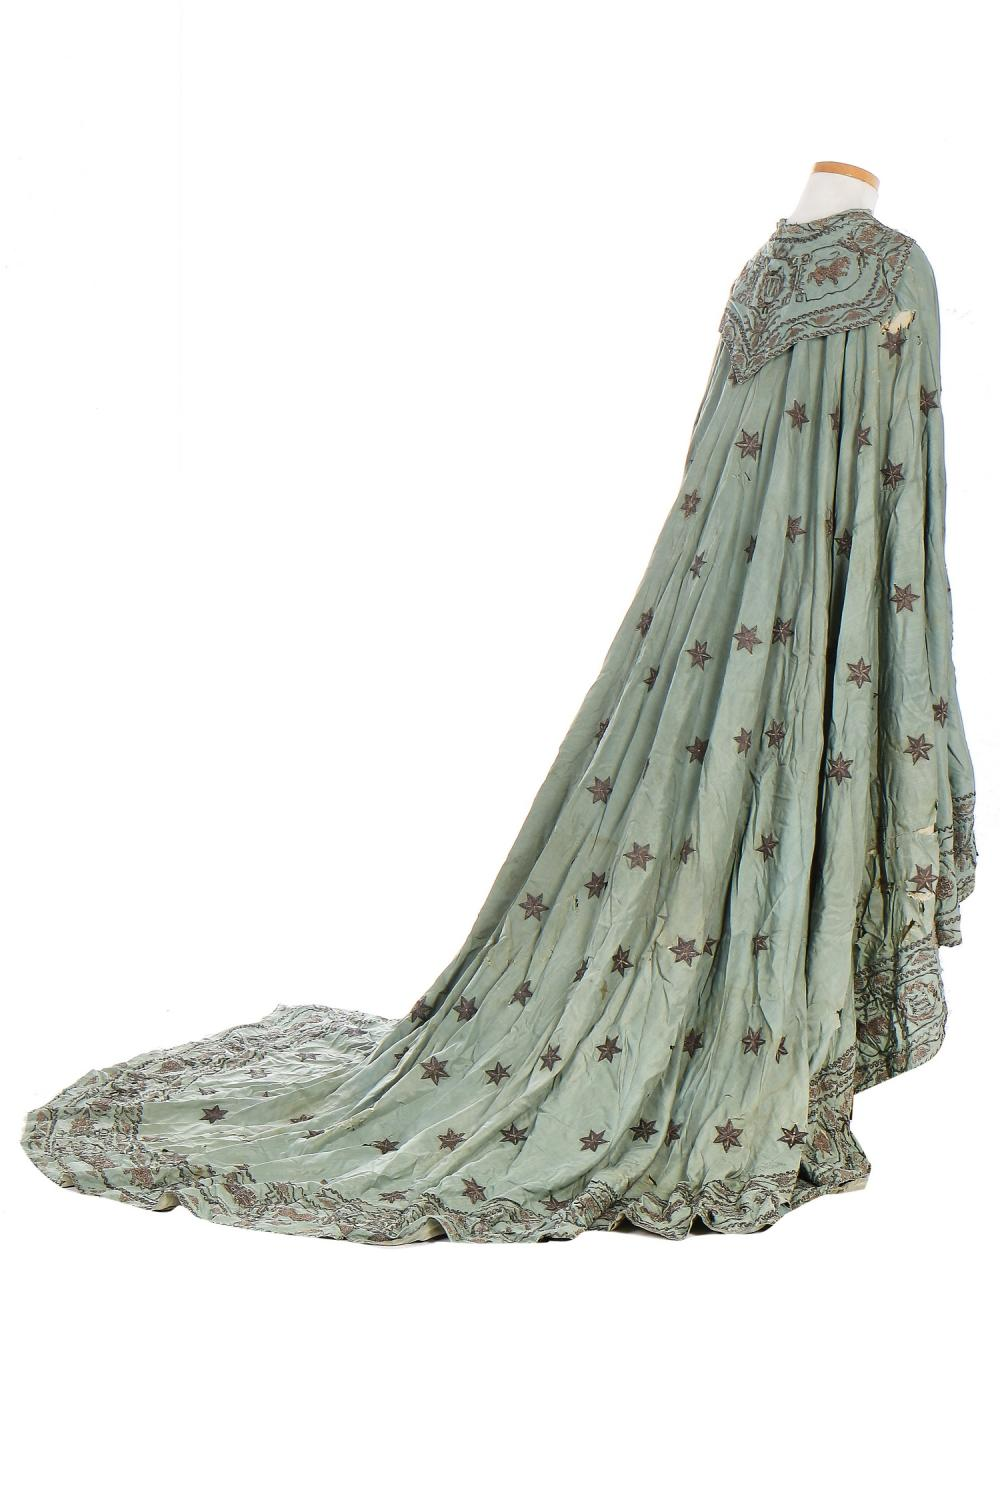 An interesting embroidered silk ceremonial or court cape, probably French, early 19th century,